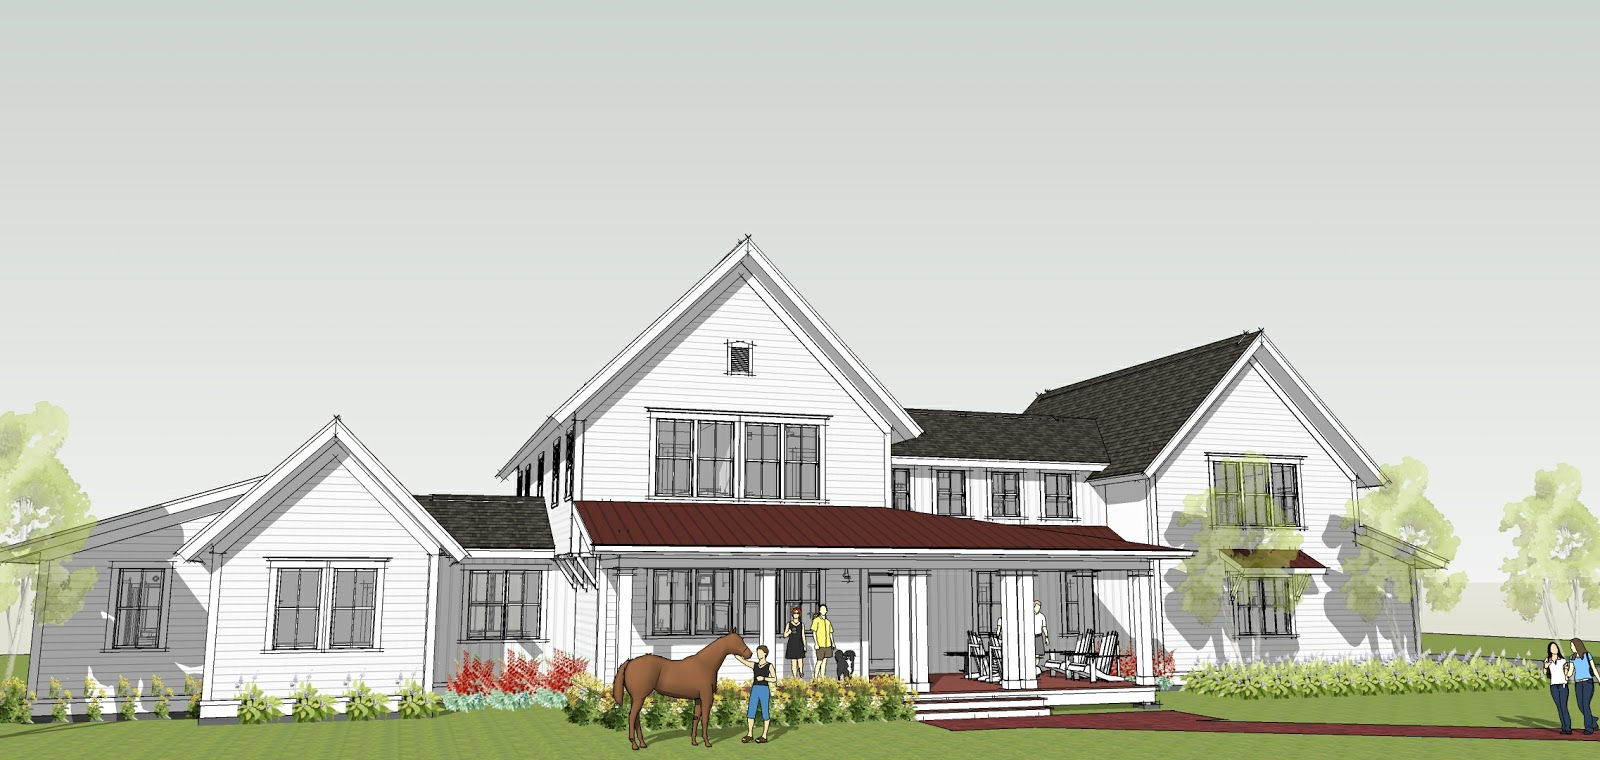 Modern farmhouse by ron brenner architects for Farmhouse plans